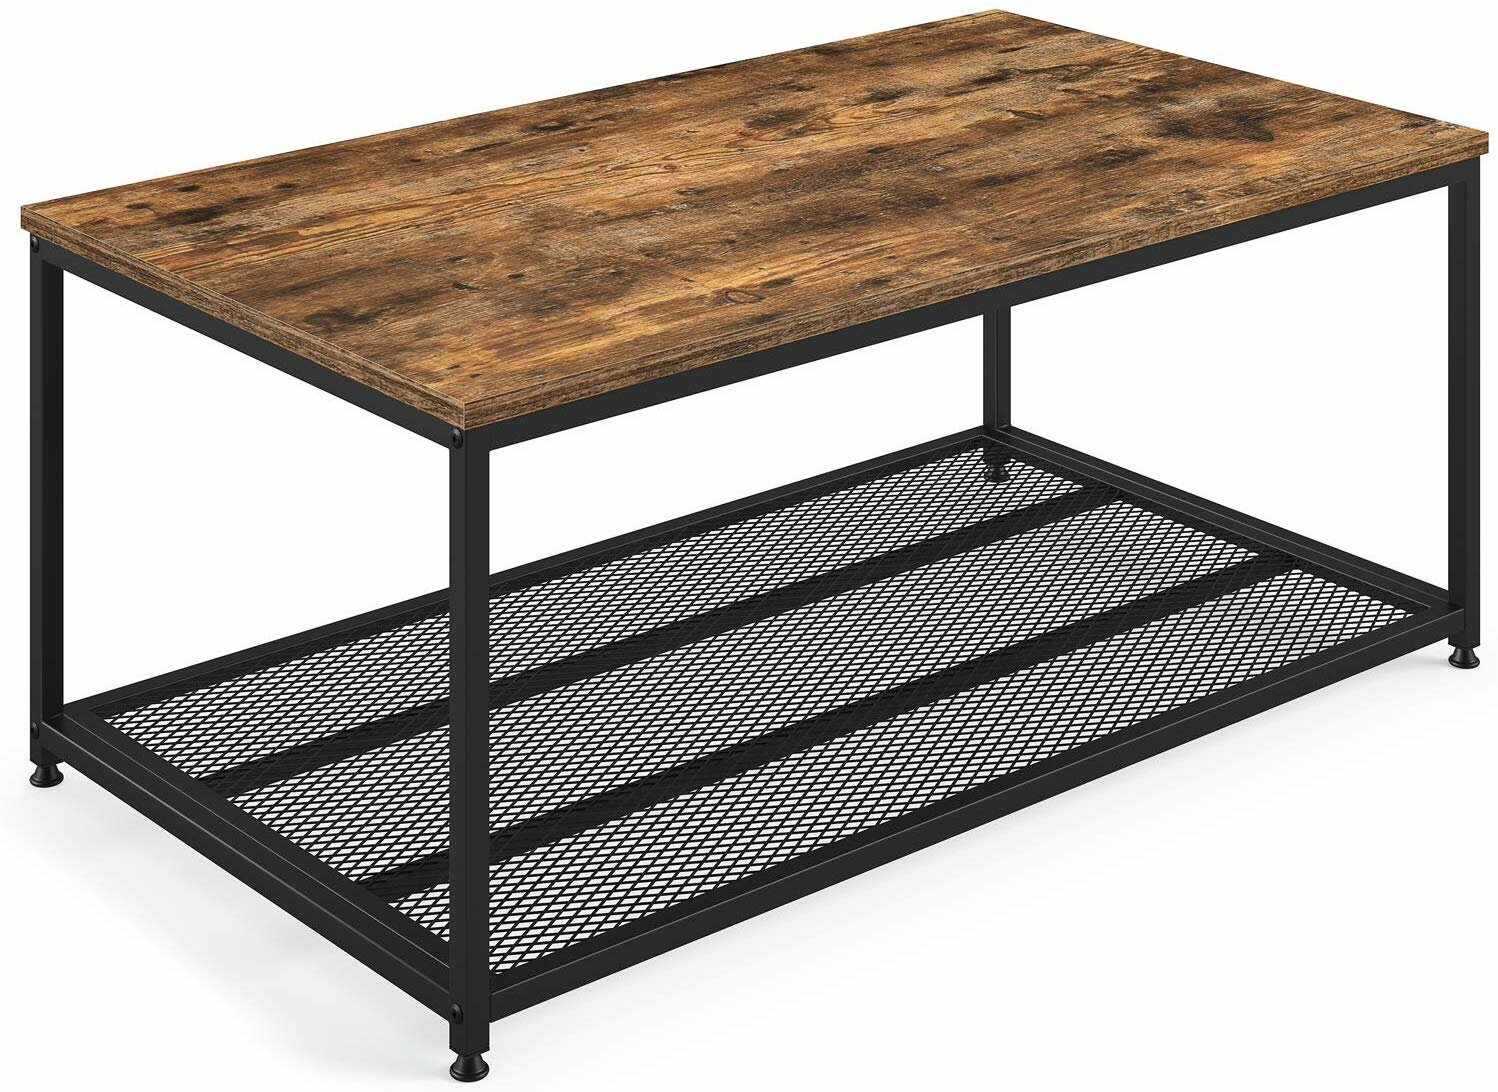 - Ballucci Industrial Coffee Table With Storage Shelf, Rustic Brown